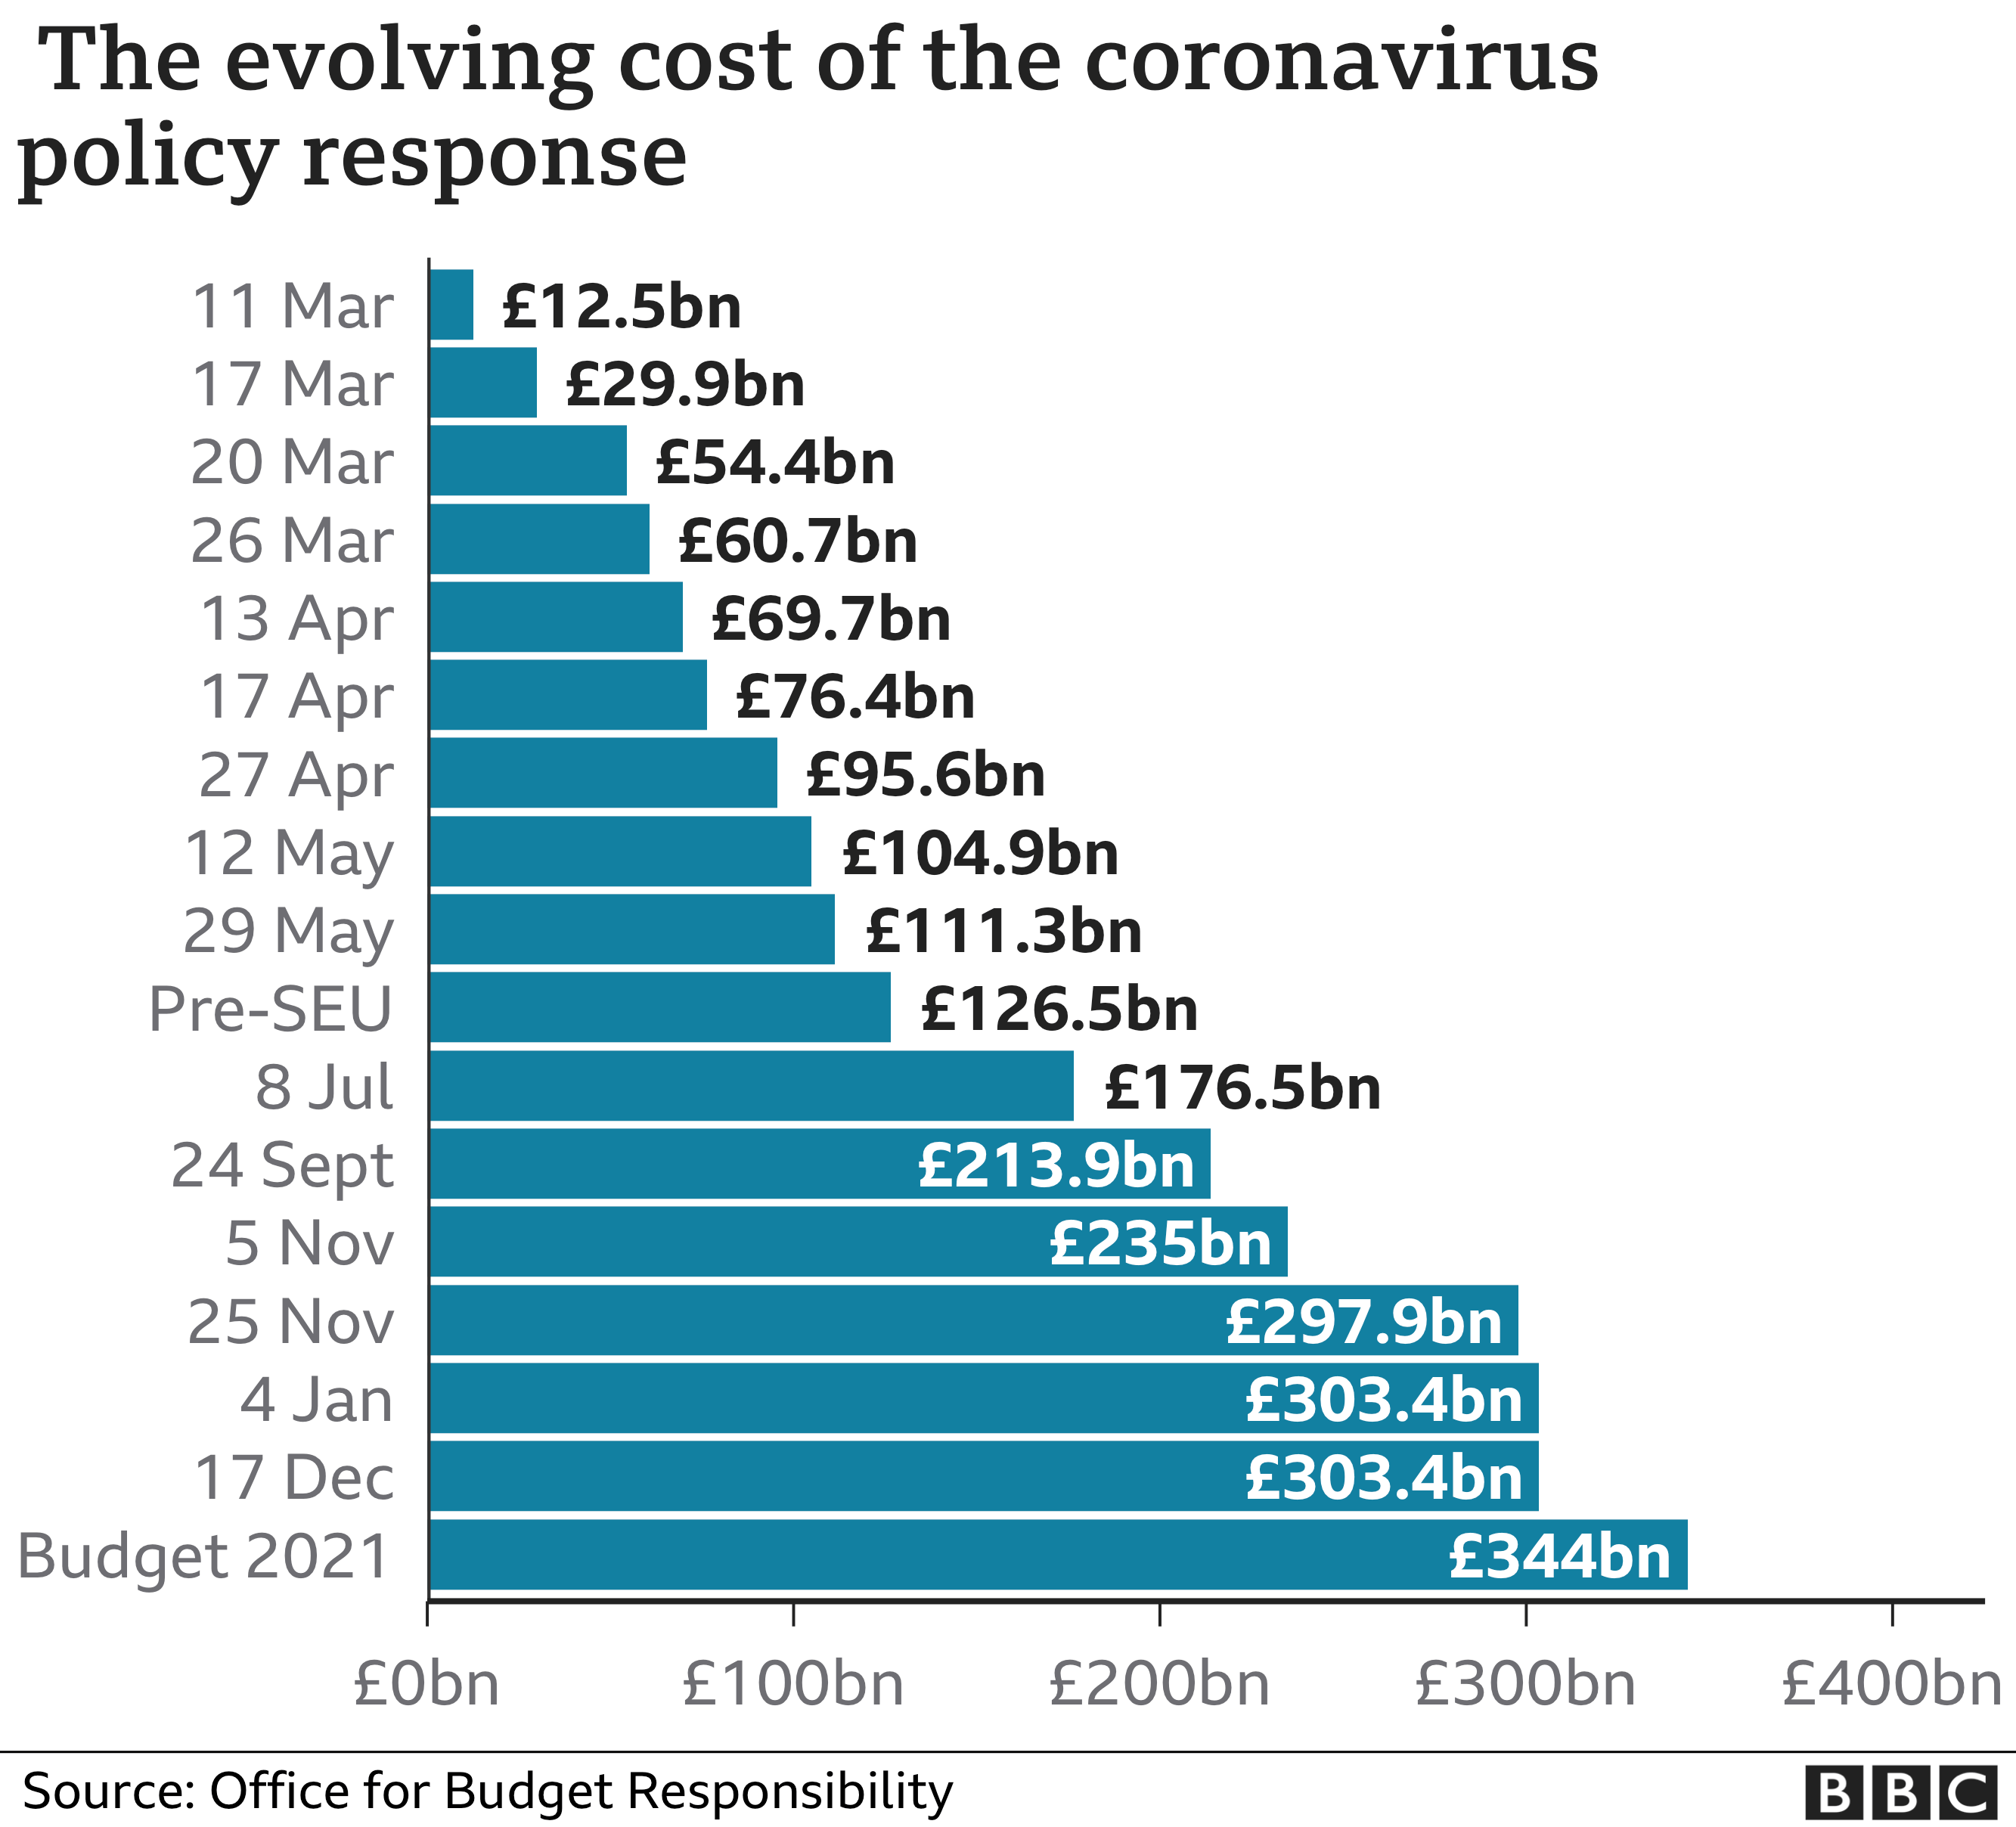 The cost of economic support measures has climbed to £344bn